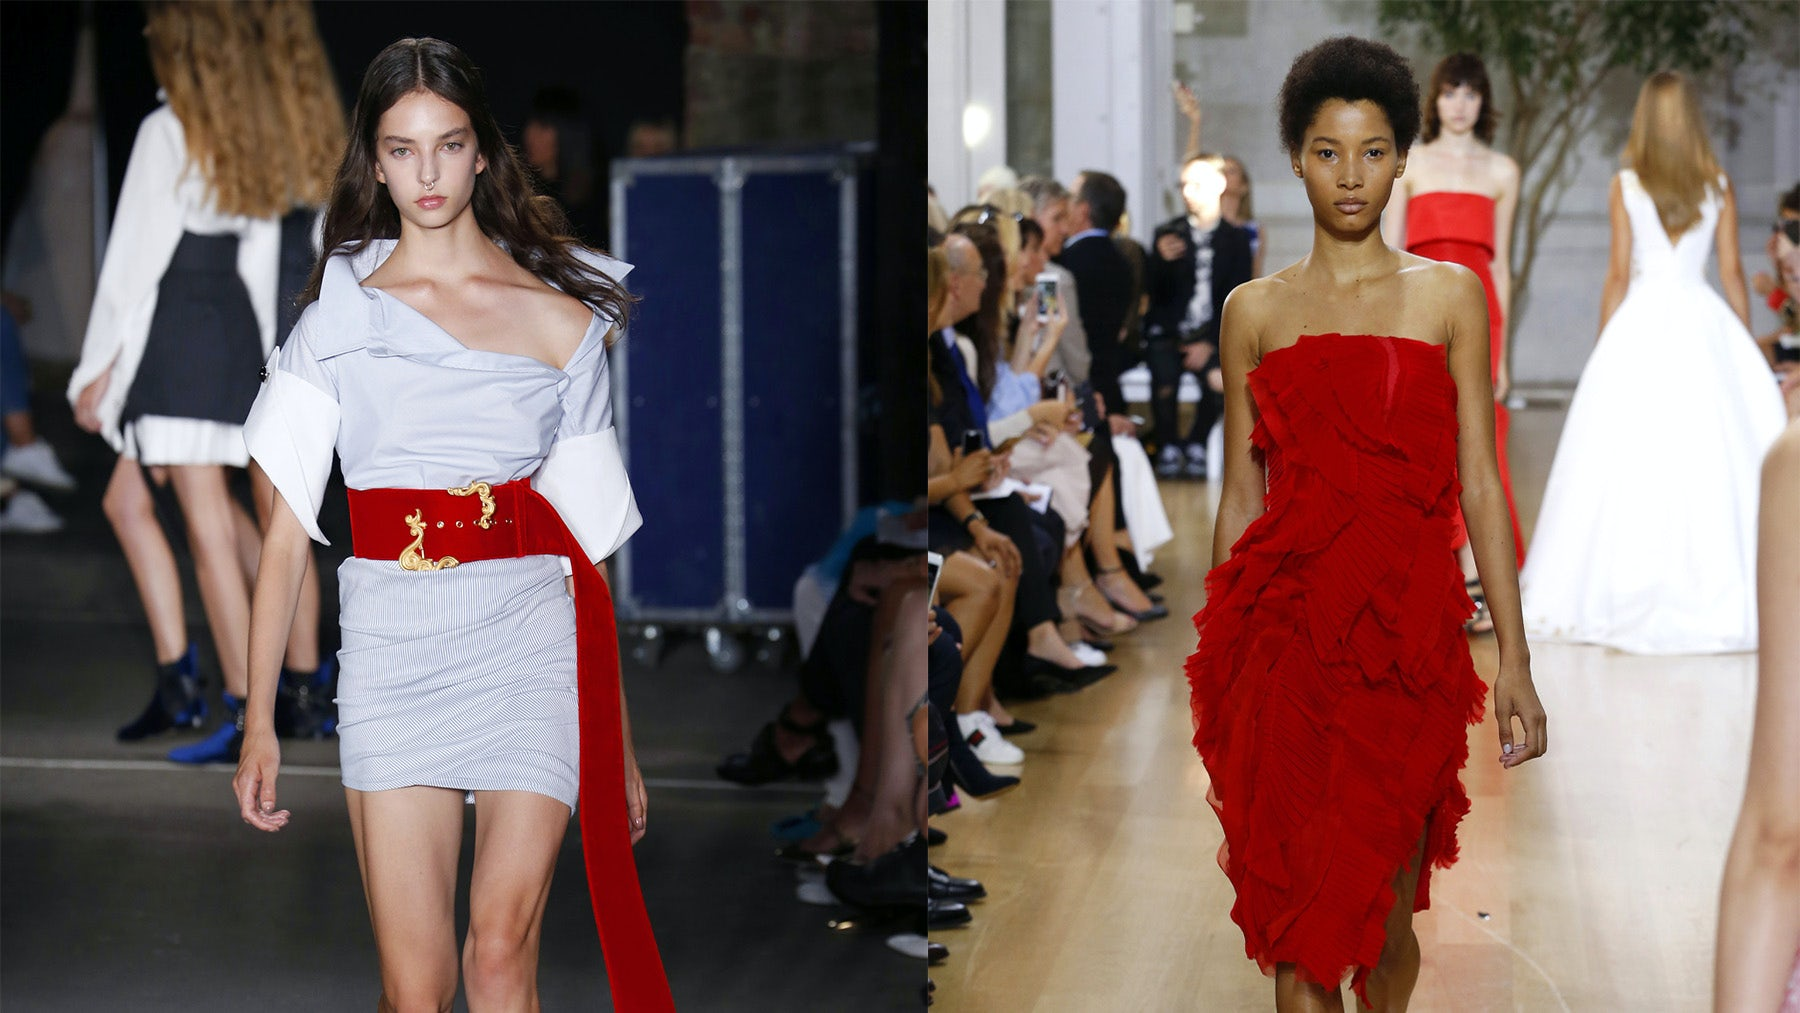 Spring/Summer 2017 looks from Monse (left) and Oscar de la Renta (right) | Source: Indigital